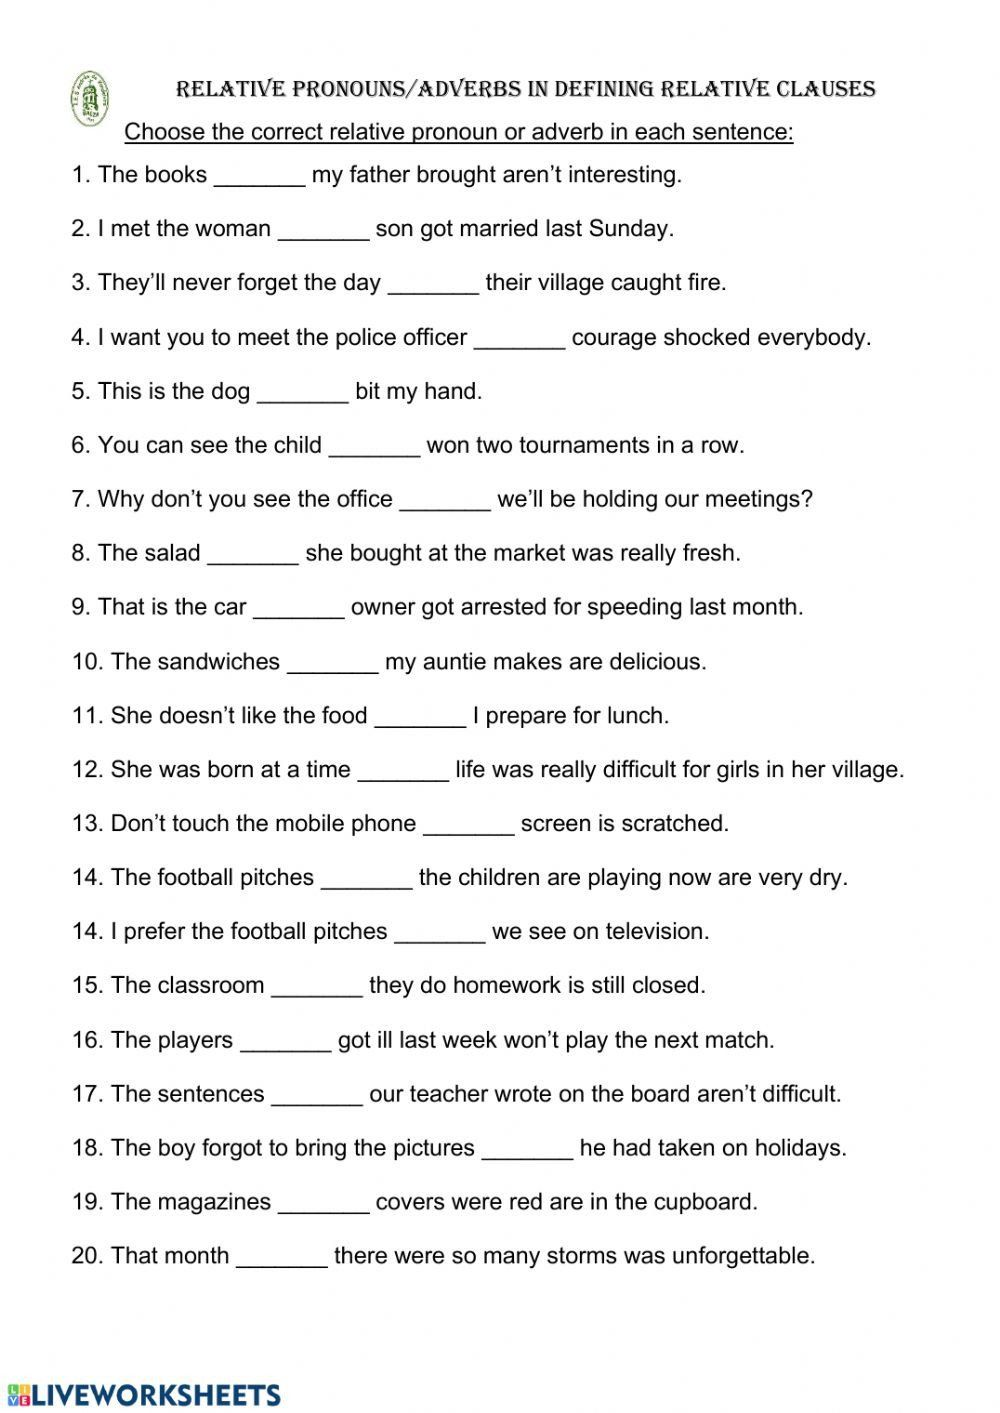 Relative Pronouns Worksheet with Answers Relative Pronouns